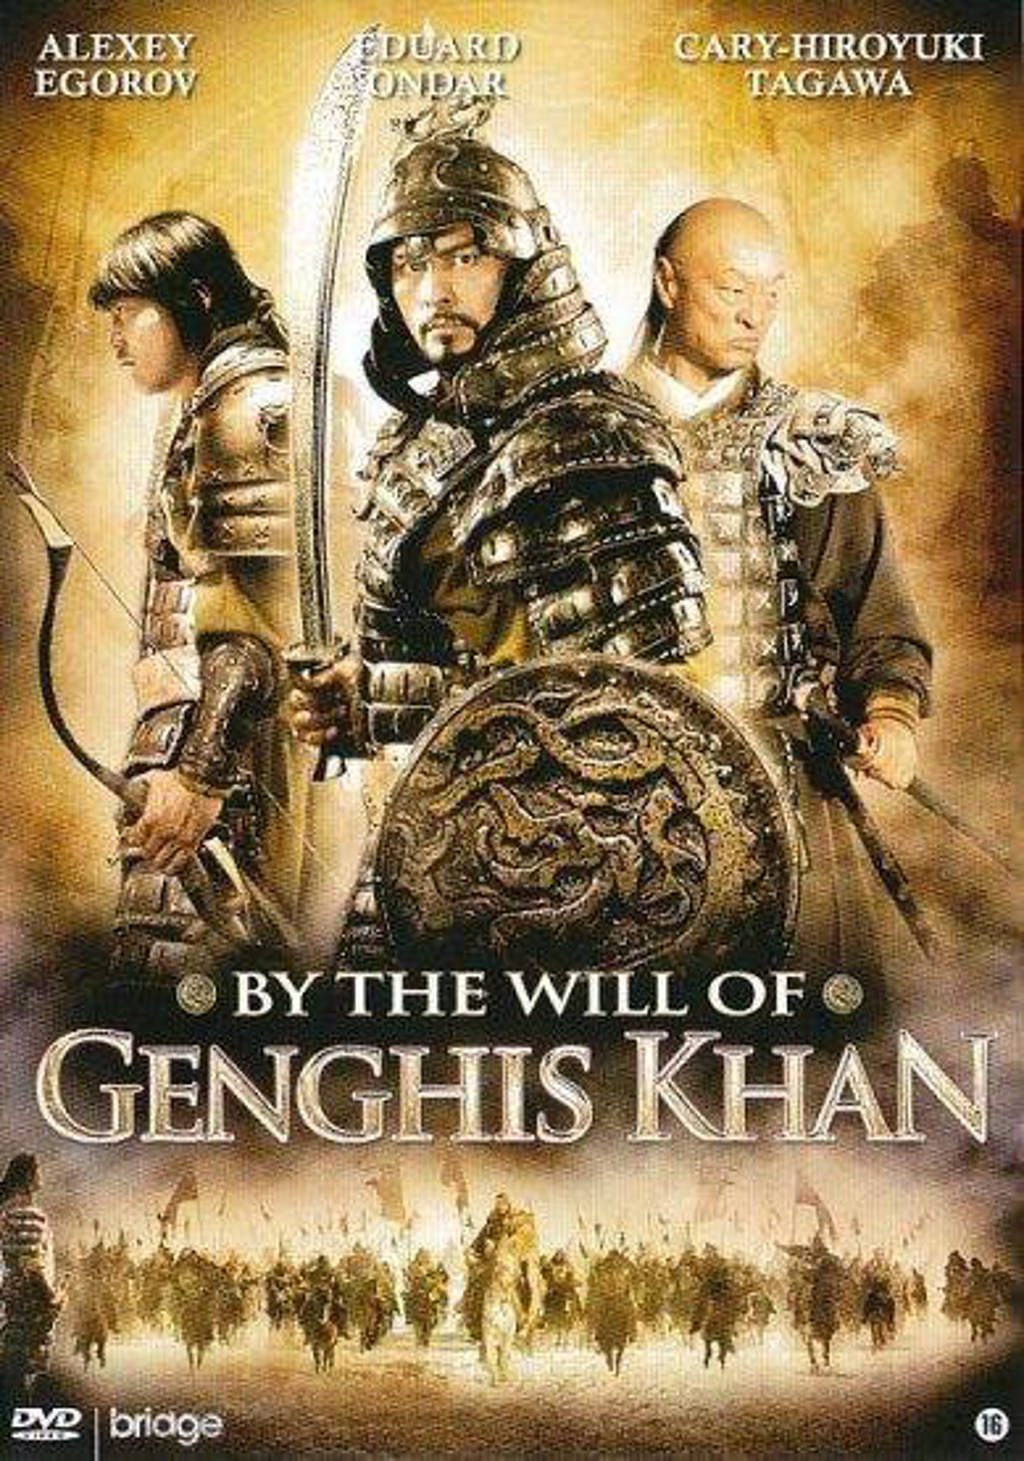 By the will of Genghis Khan (DVD)